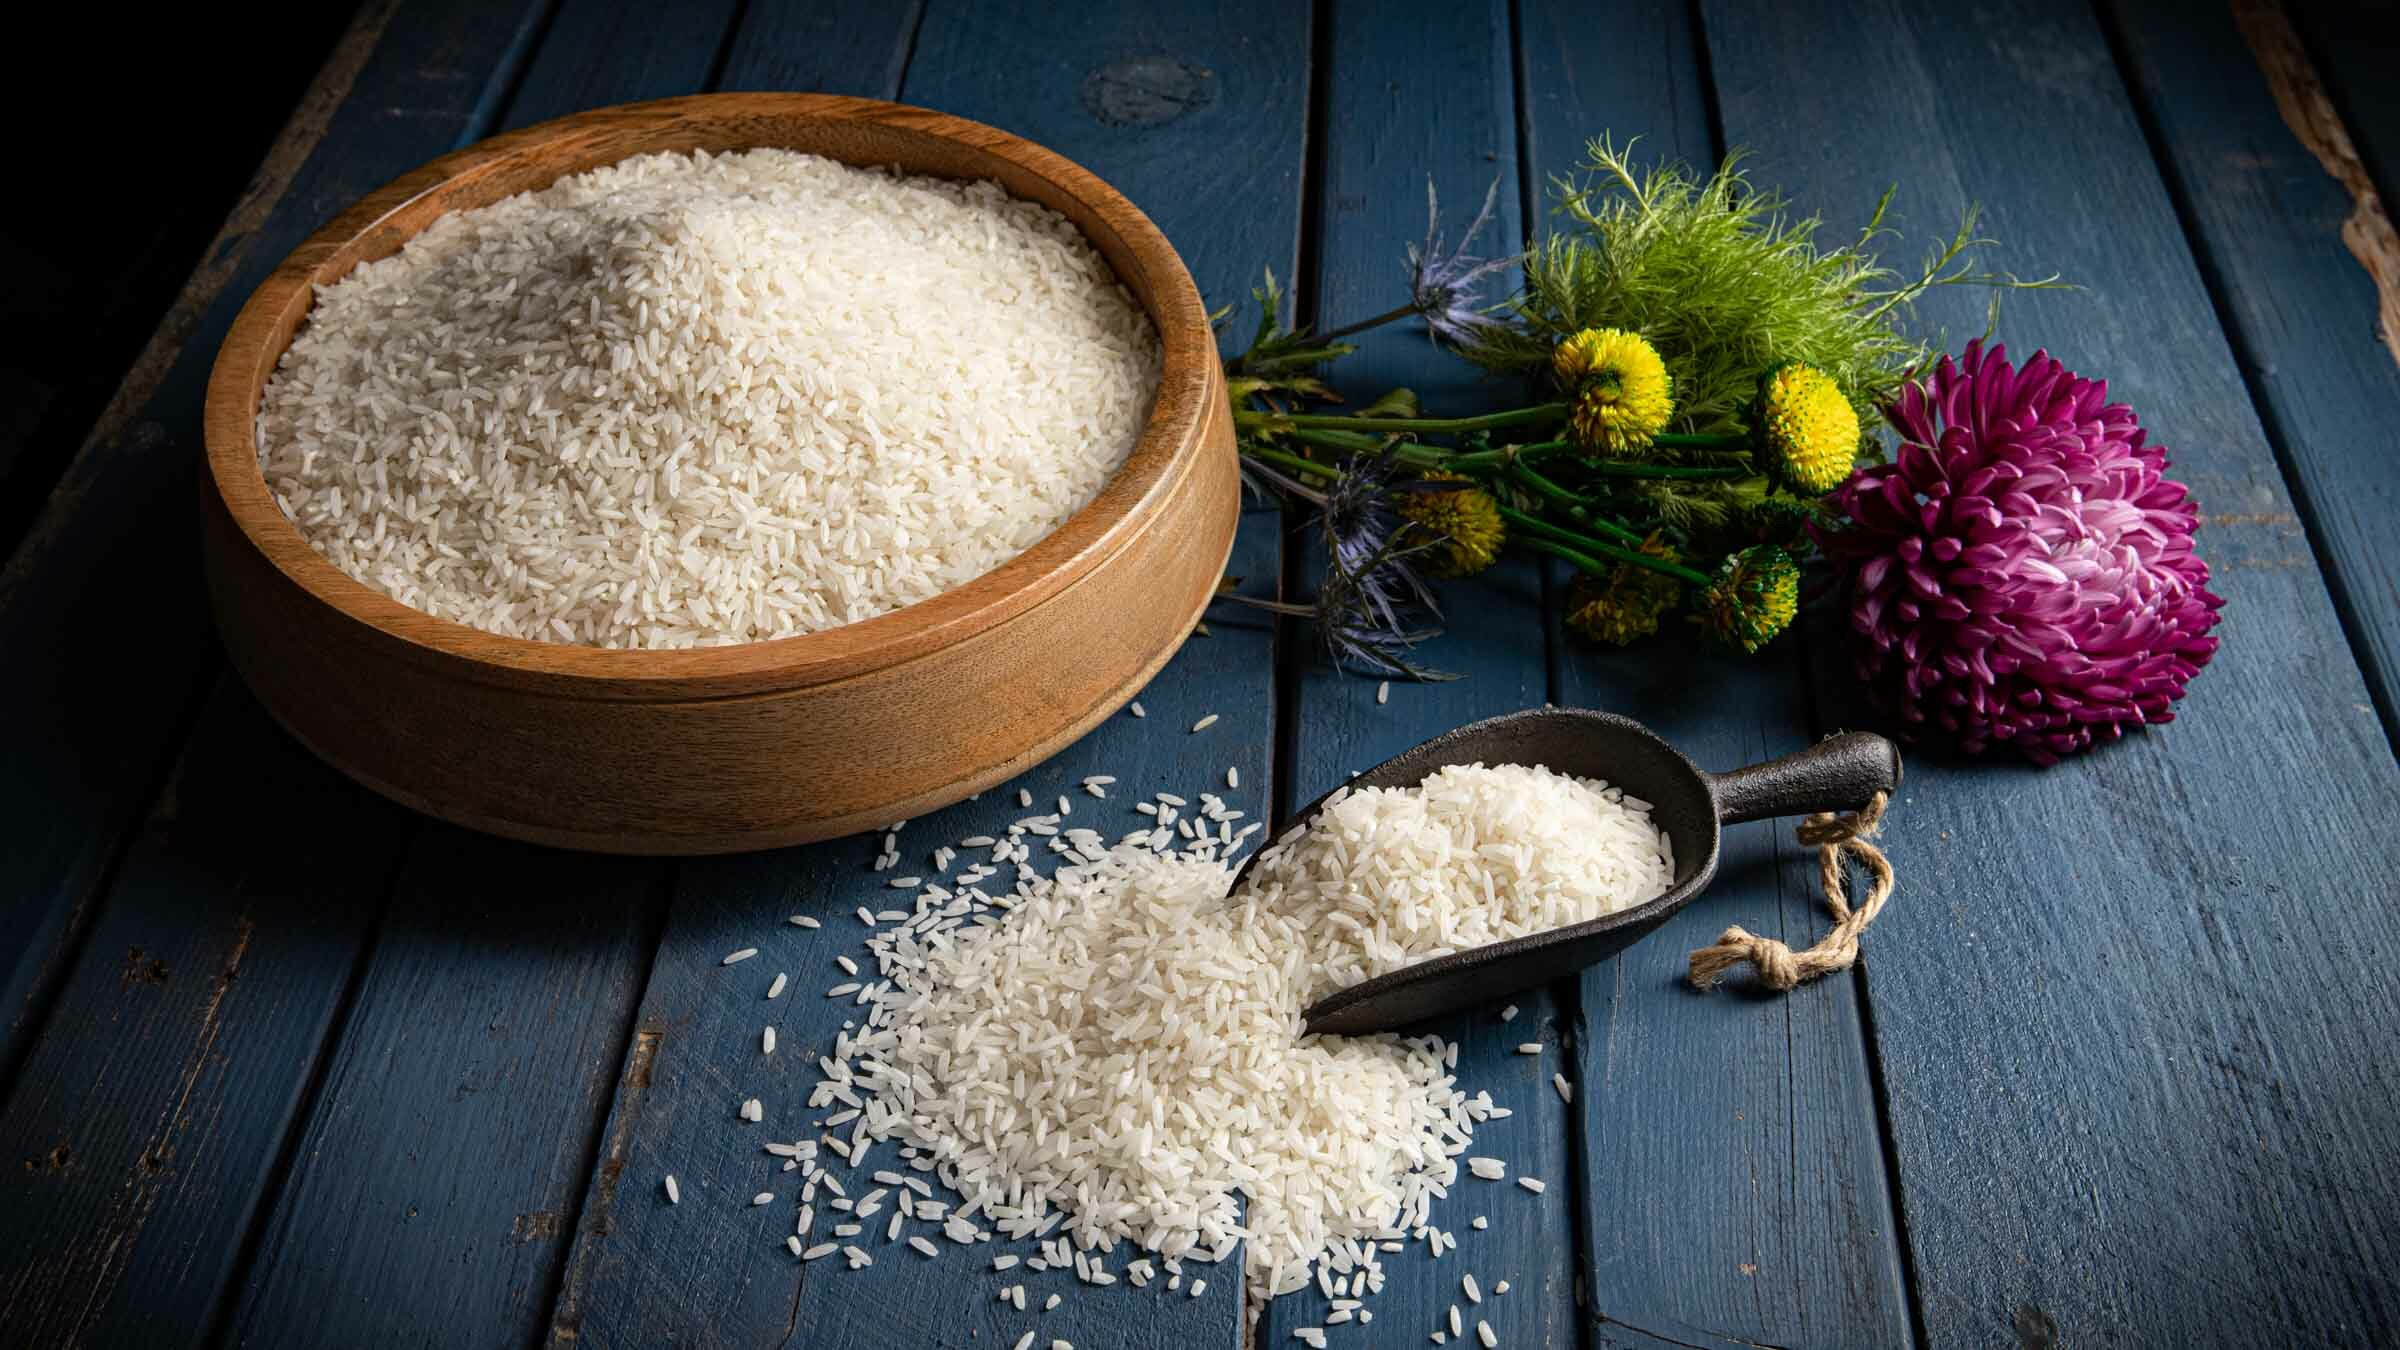 White Basmati rice on table with bowl and scoop